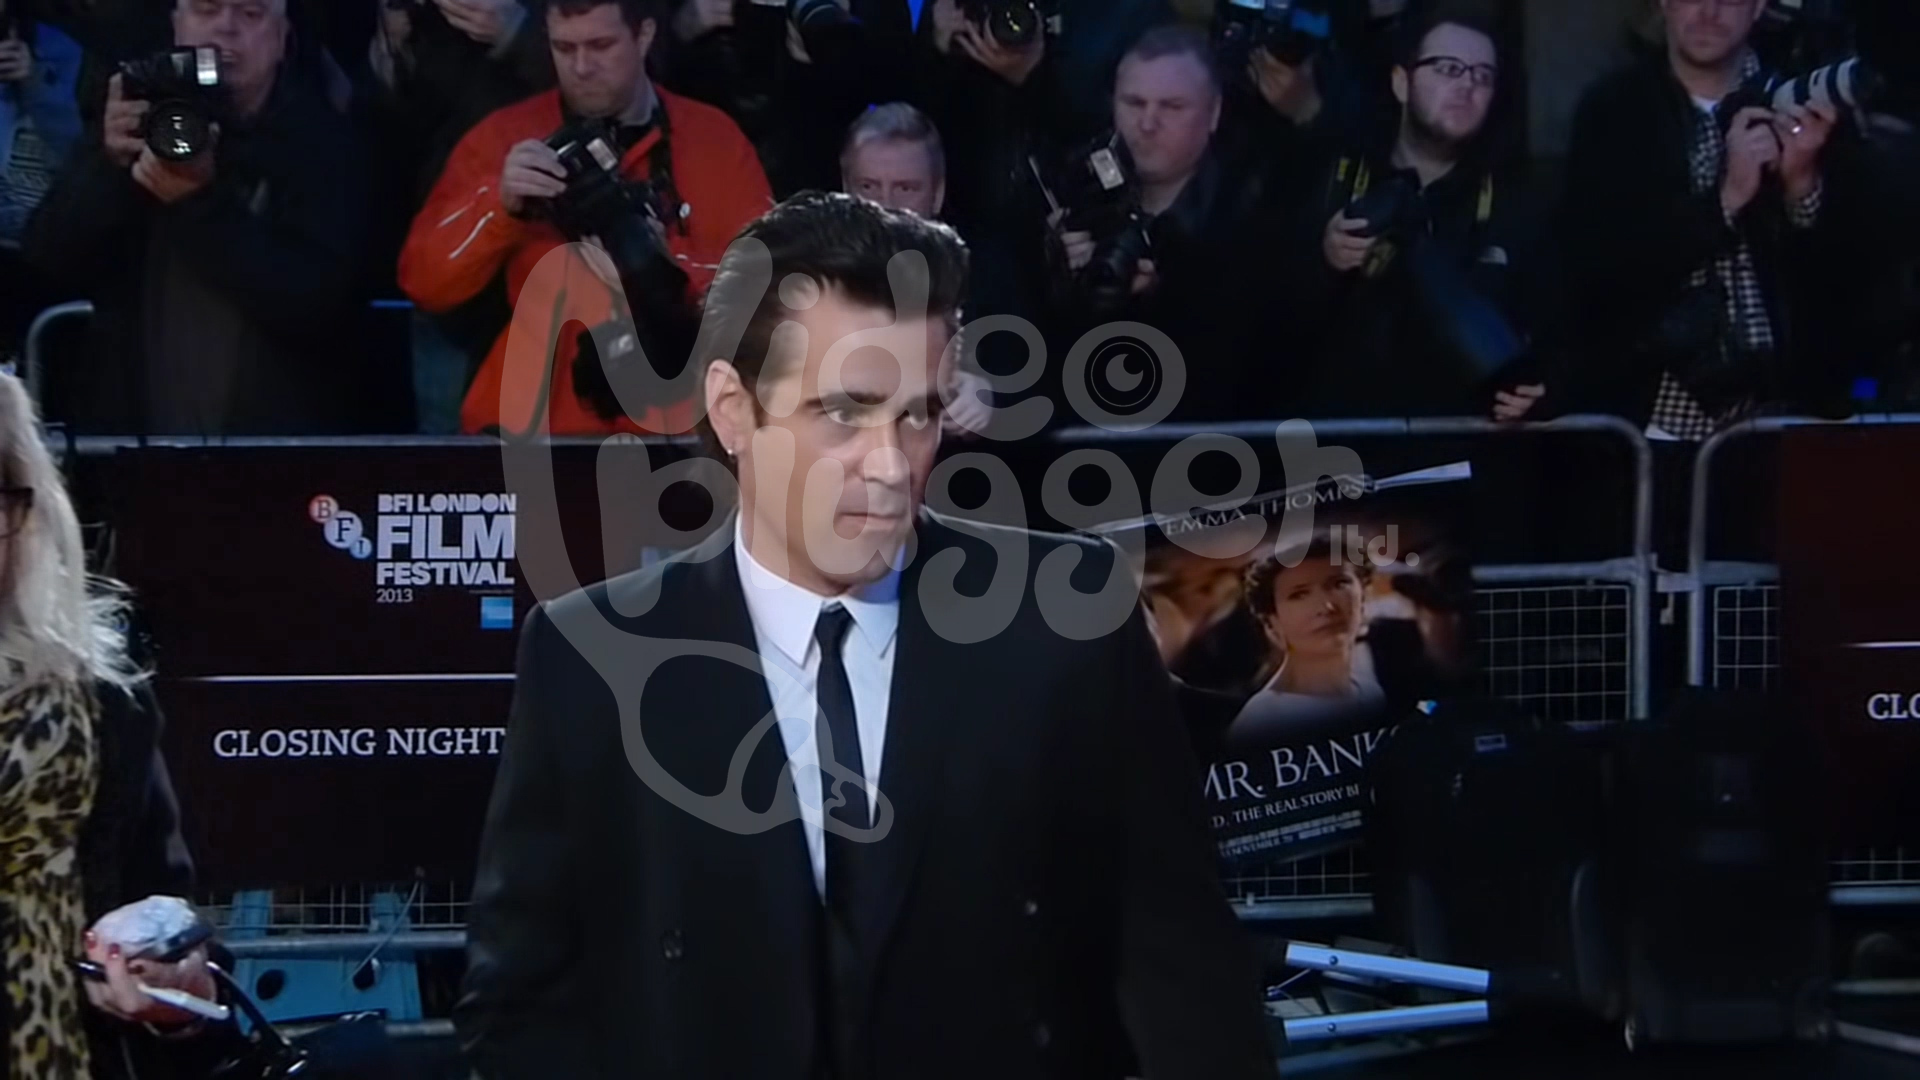 saving-mr-banks-world-premiere-Colin-Farrell